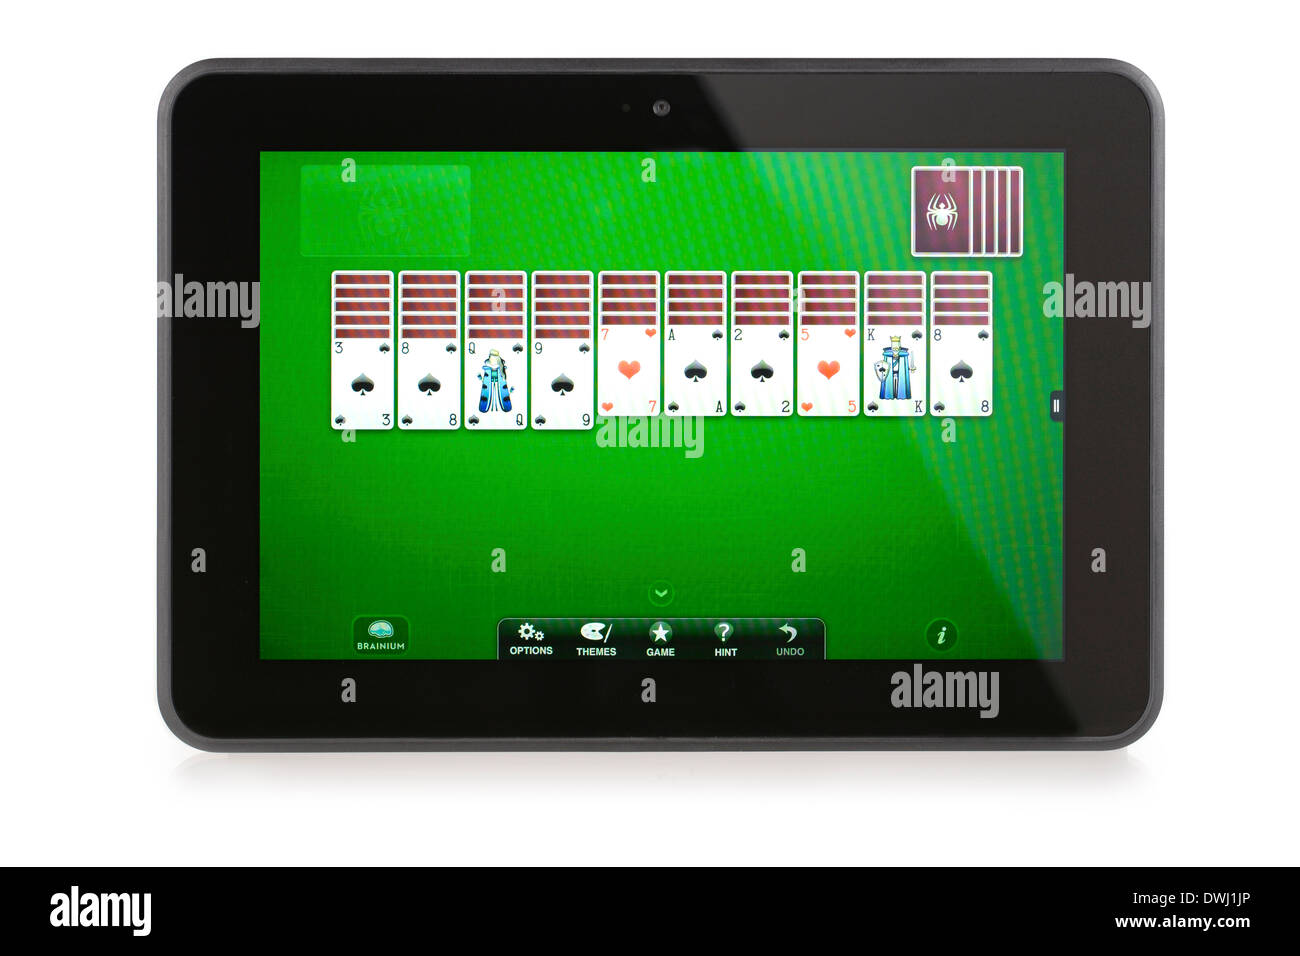 Kindle Fire HD 8.9 with Spider Solitaire game App installed and running - Stock Image